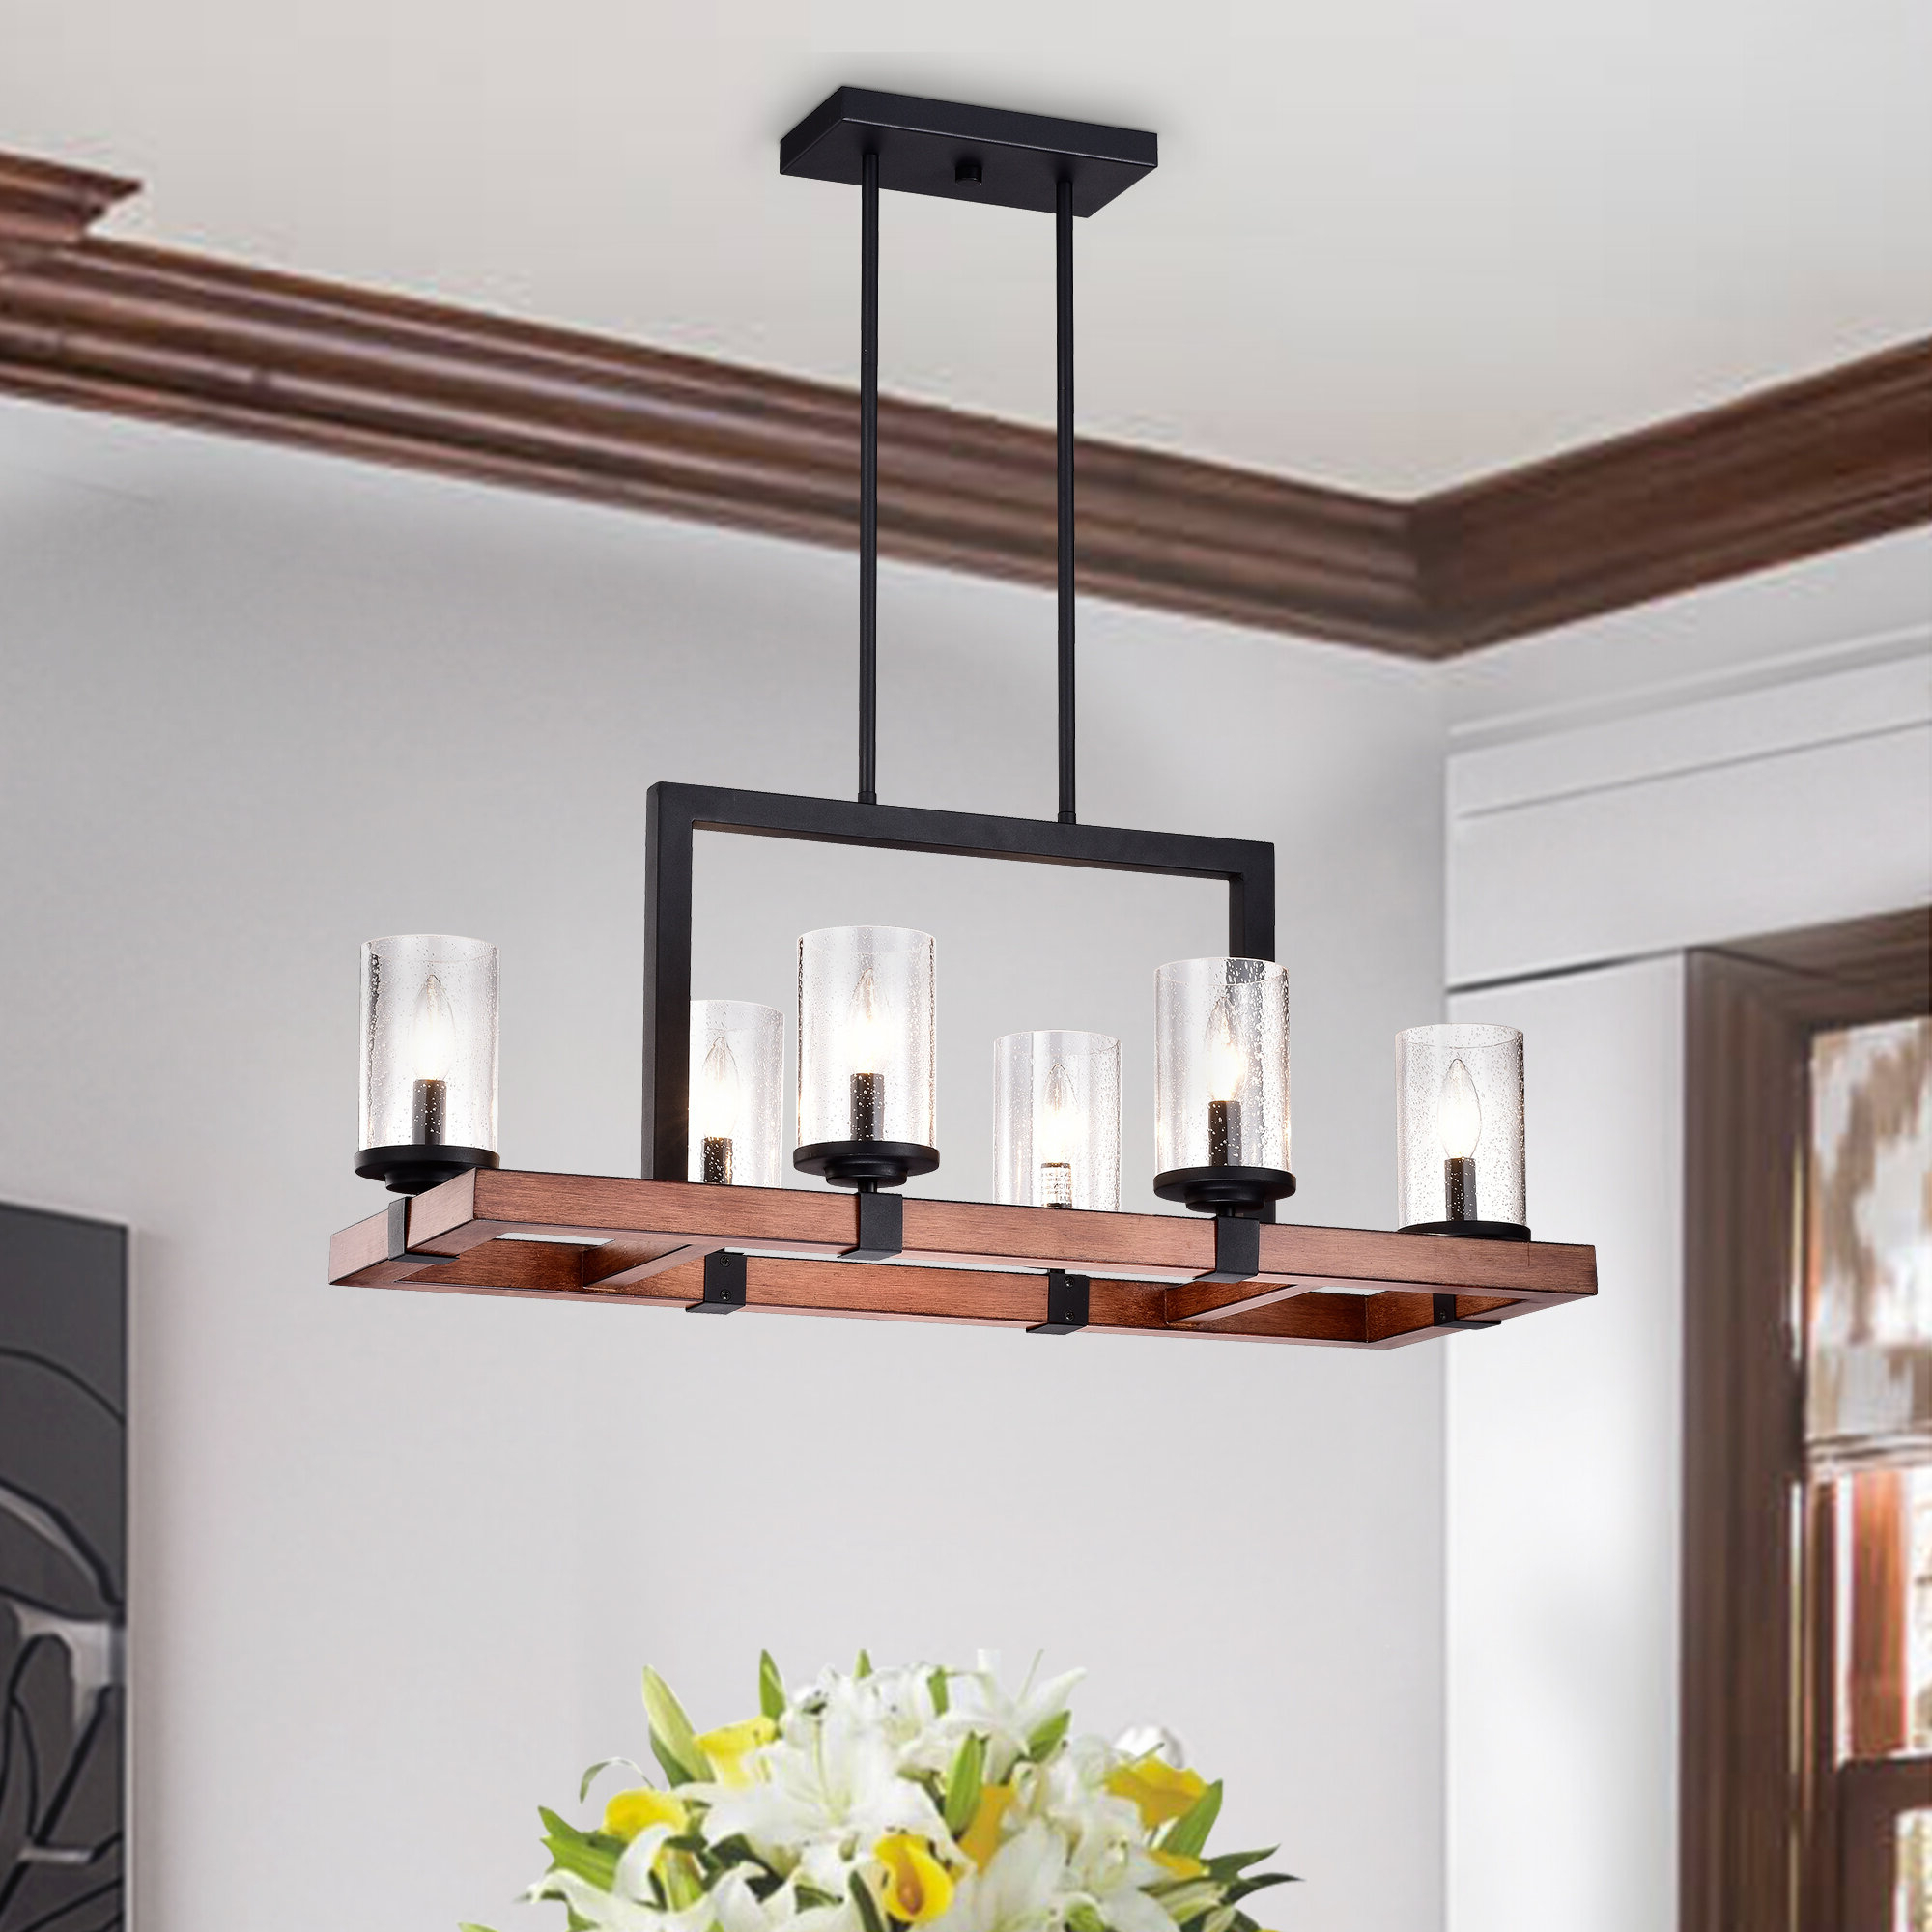 Zion 6 Light Kitchen Island Pendant With Well Known Novogratz Vintage 5 Light Kitchen Island Bulb Pendants (View 20 of 20)